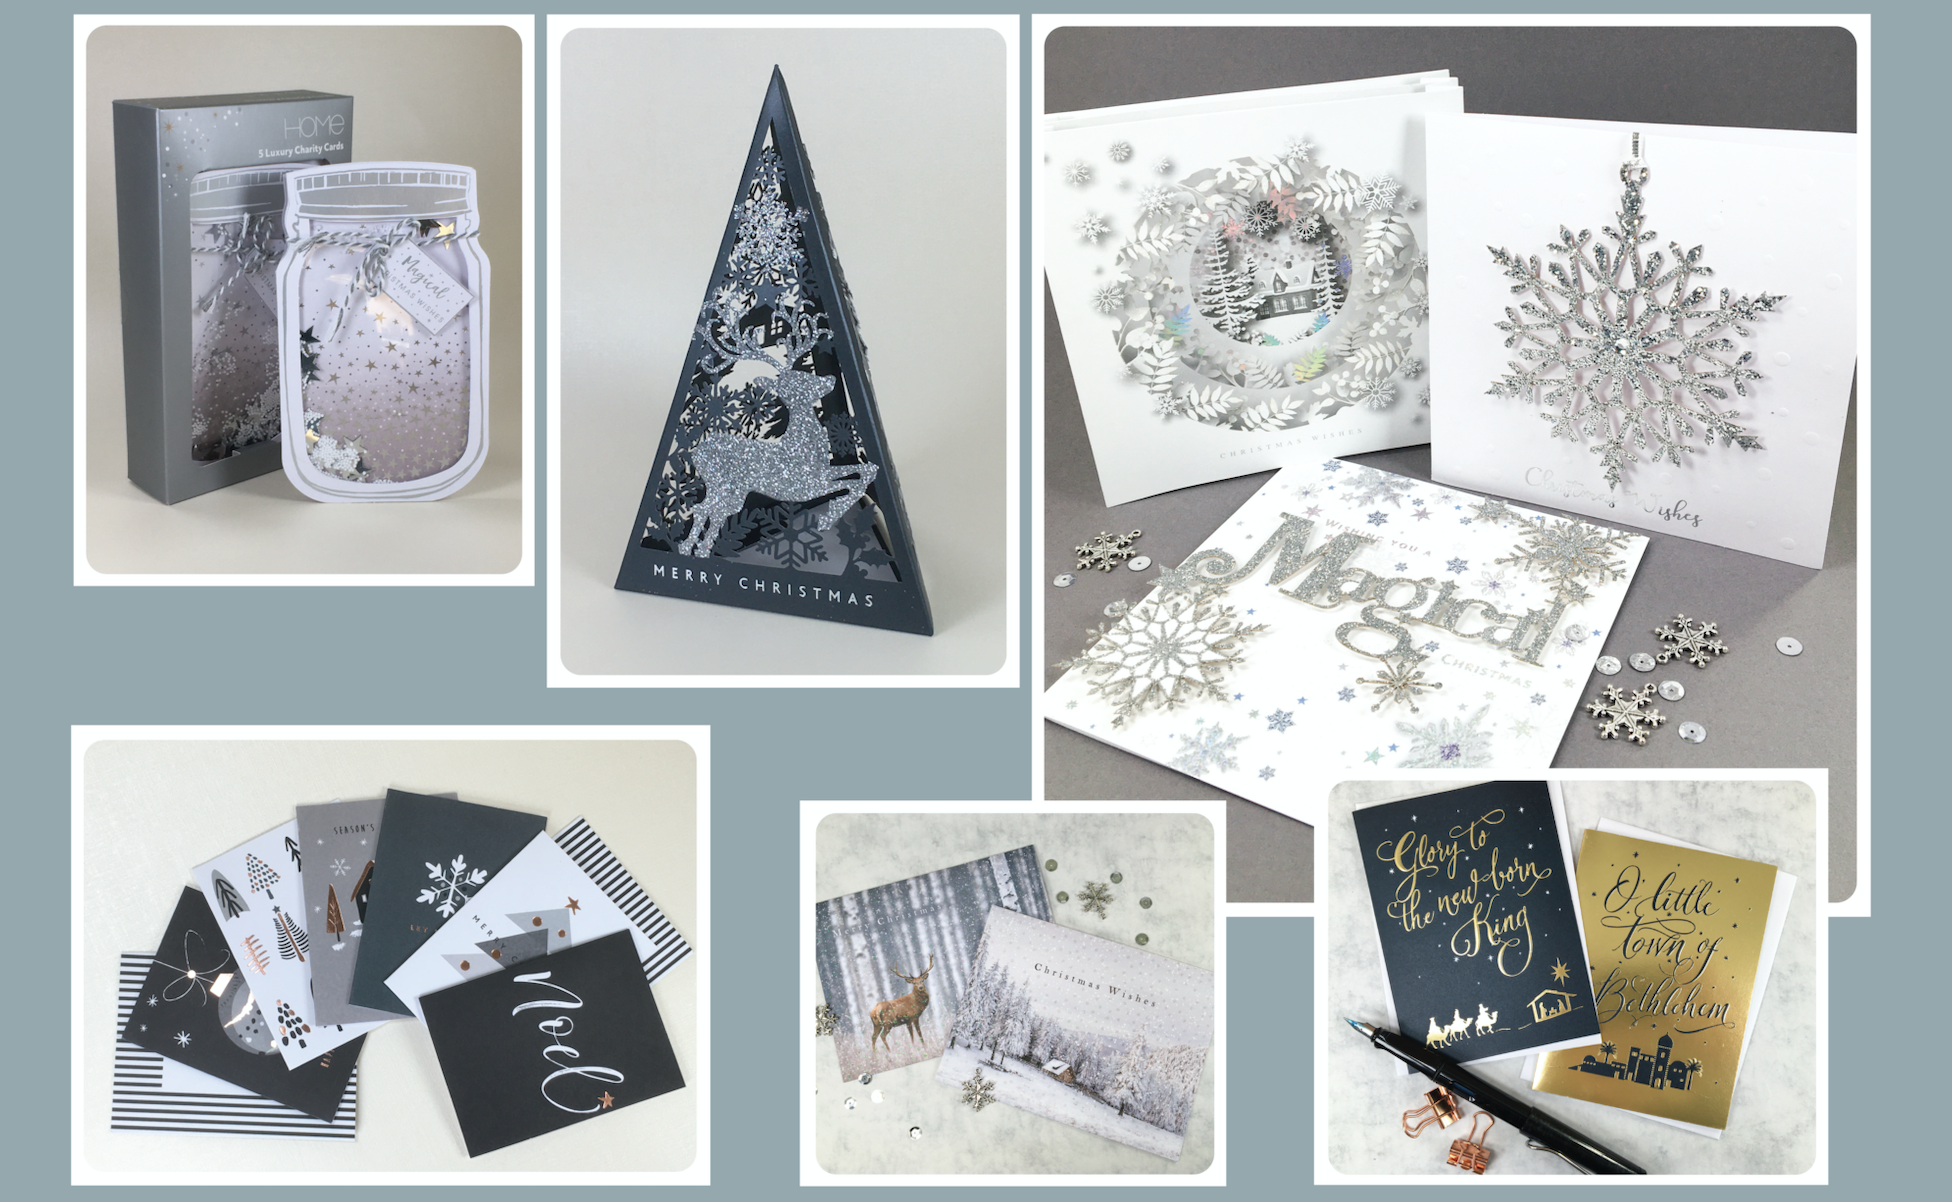 Above: Some of the Christmas cards designed and produced by Tailormade Design.